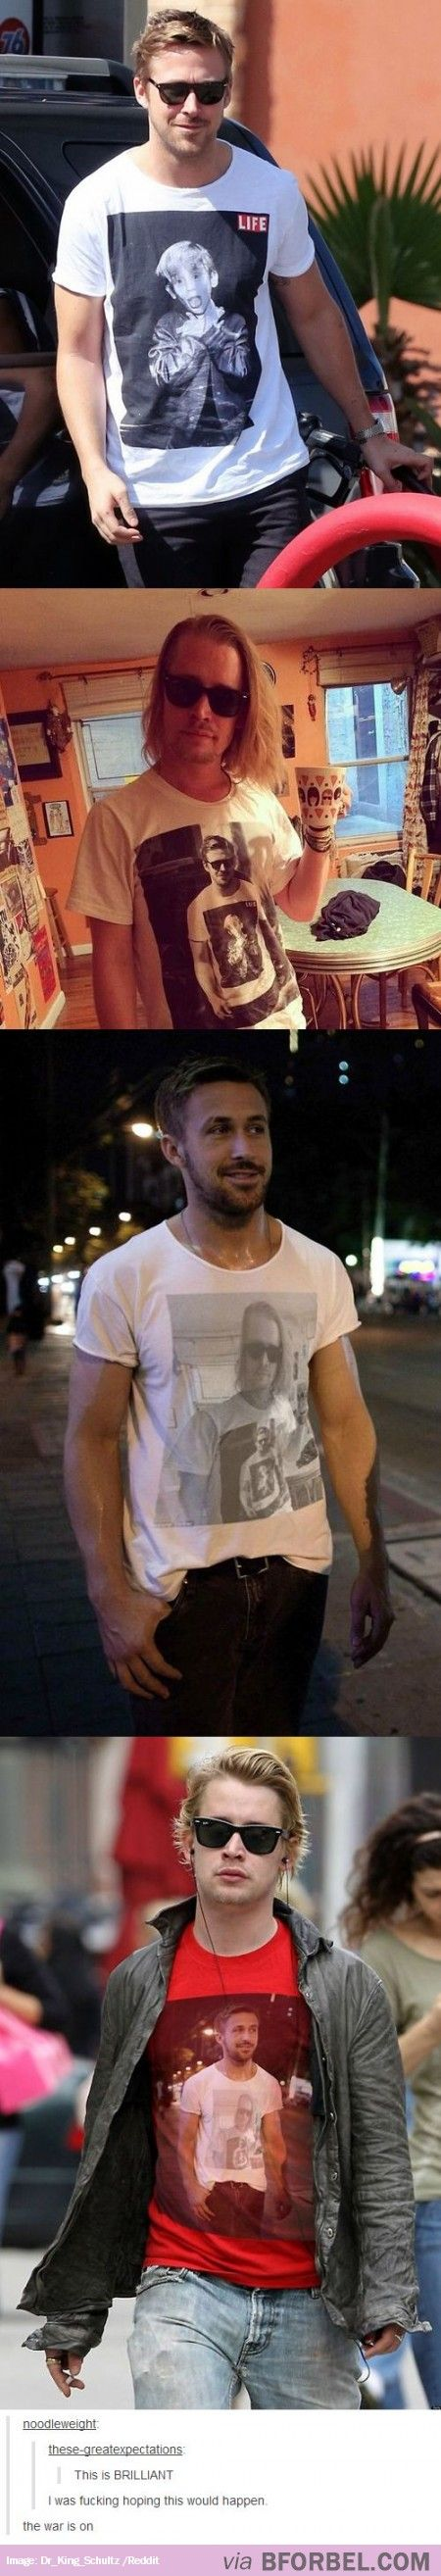 This is epic! McCauley Culken and Ryan Gosling have a tshirt war!